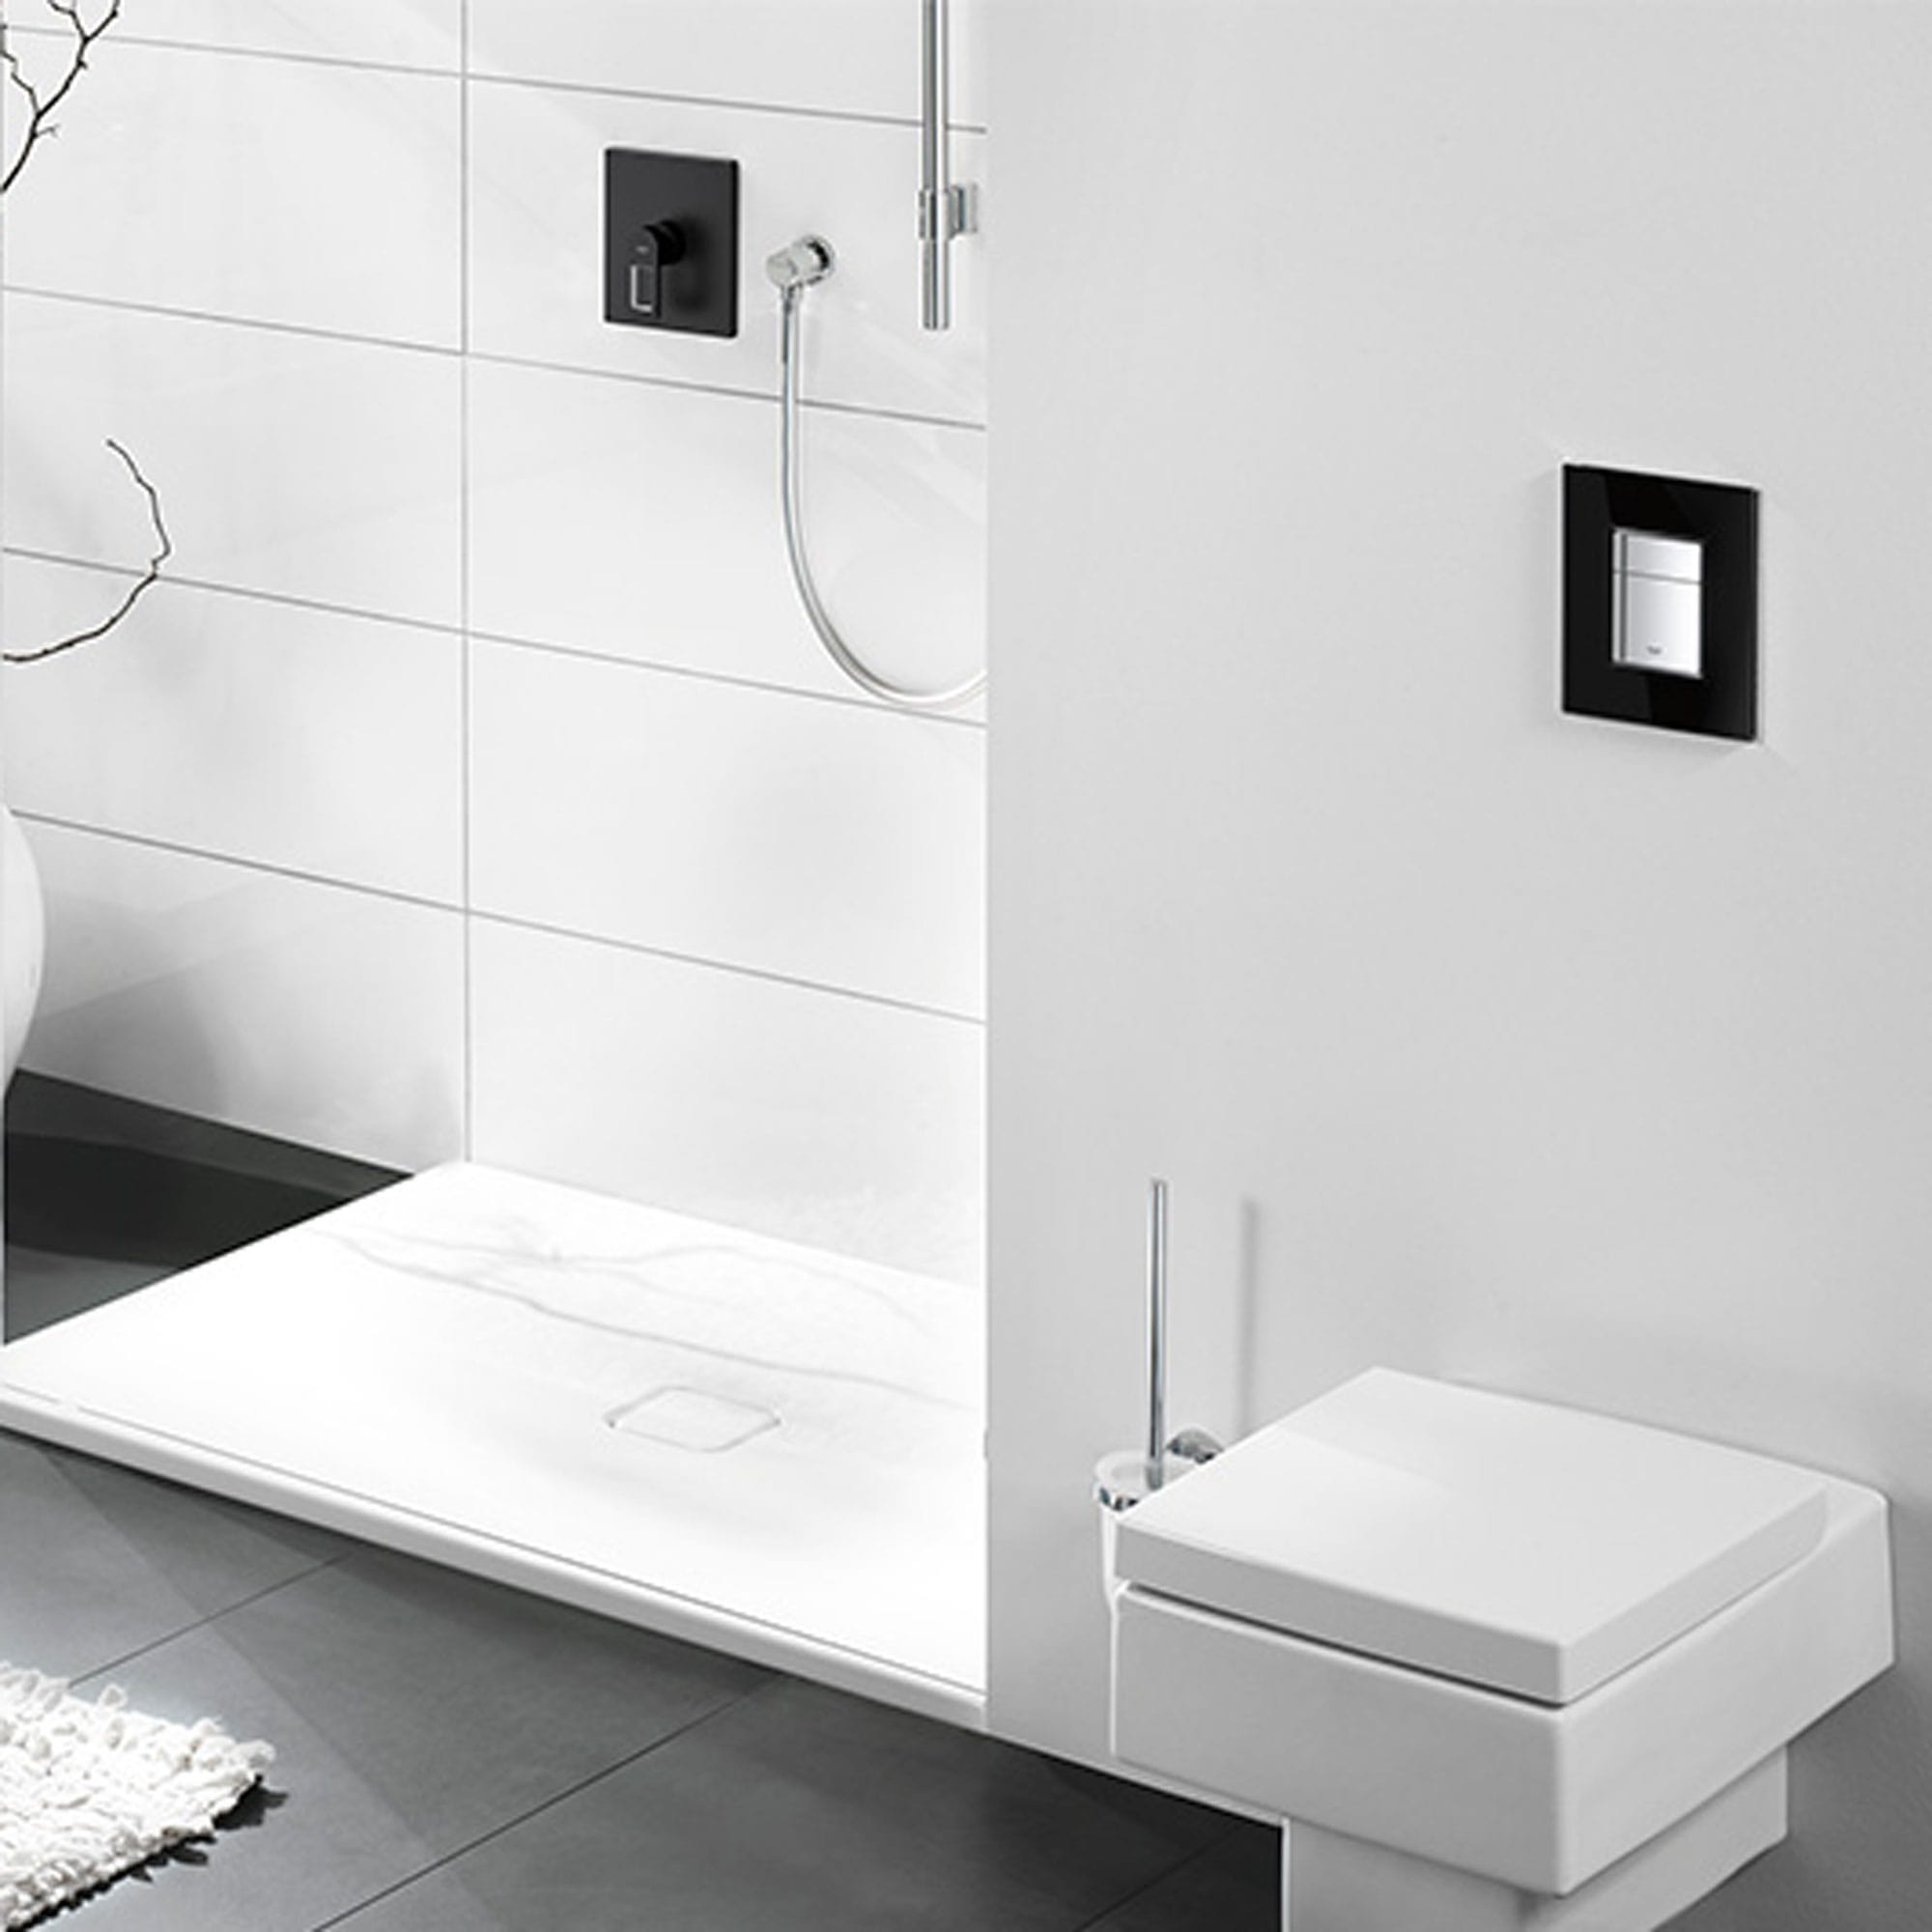 Square flush plate in a grey bathroom.